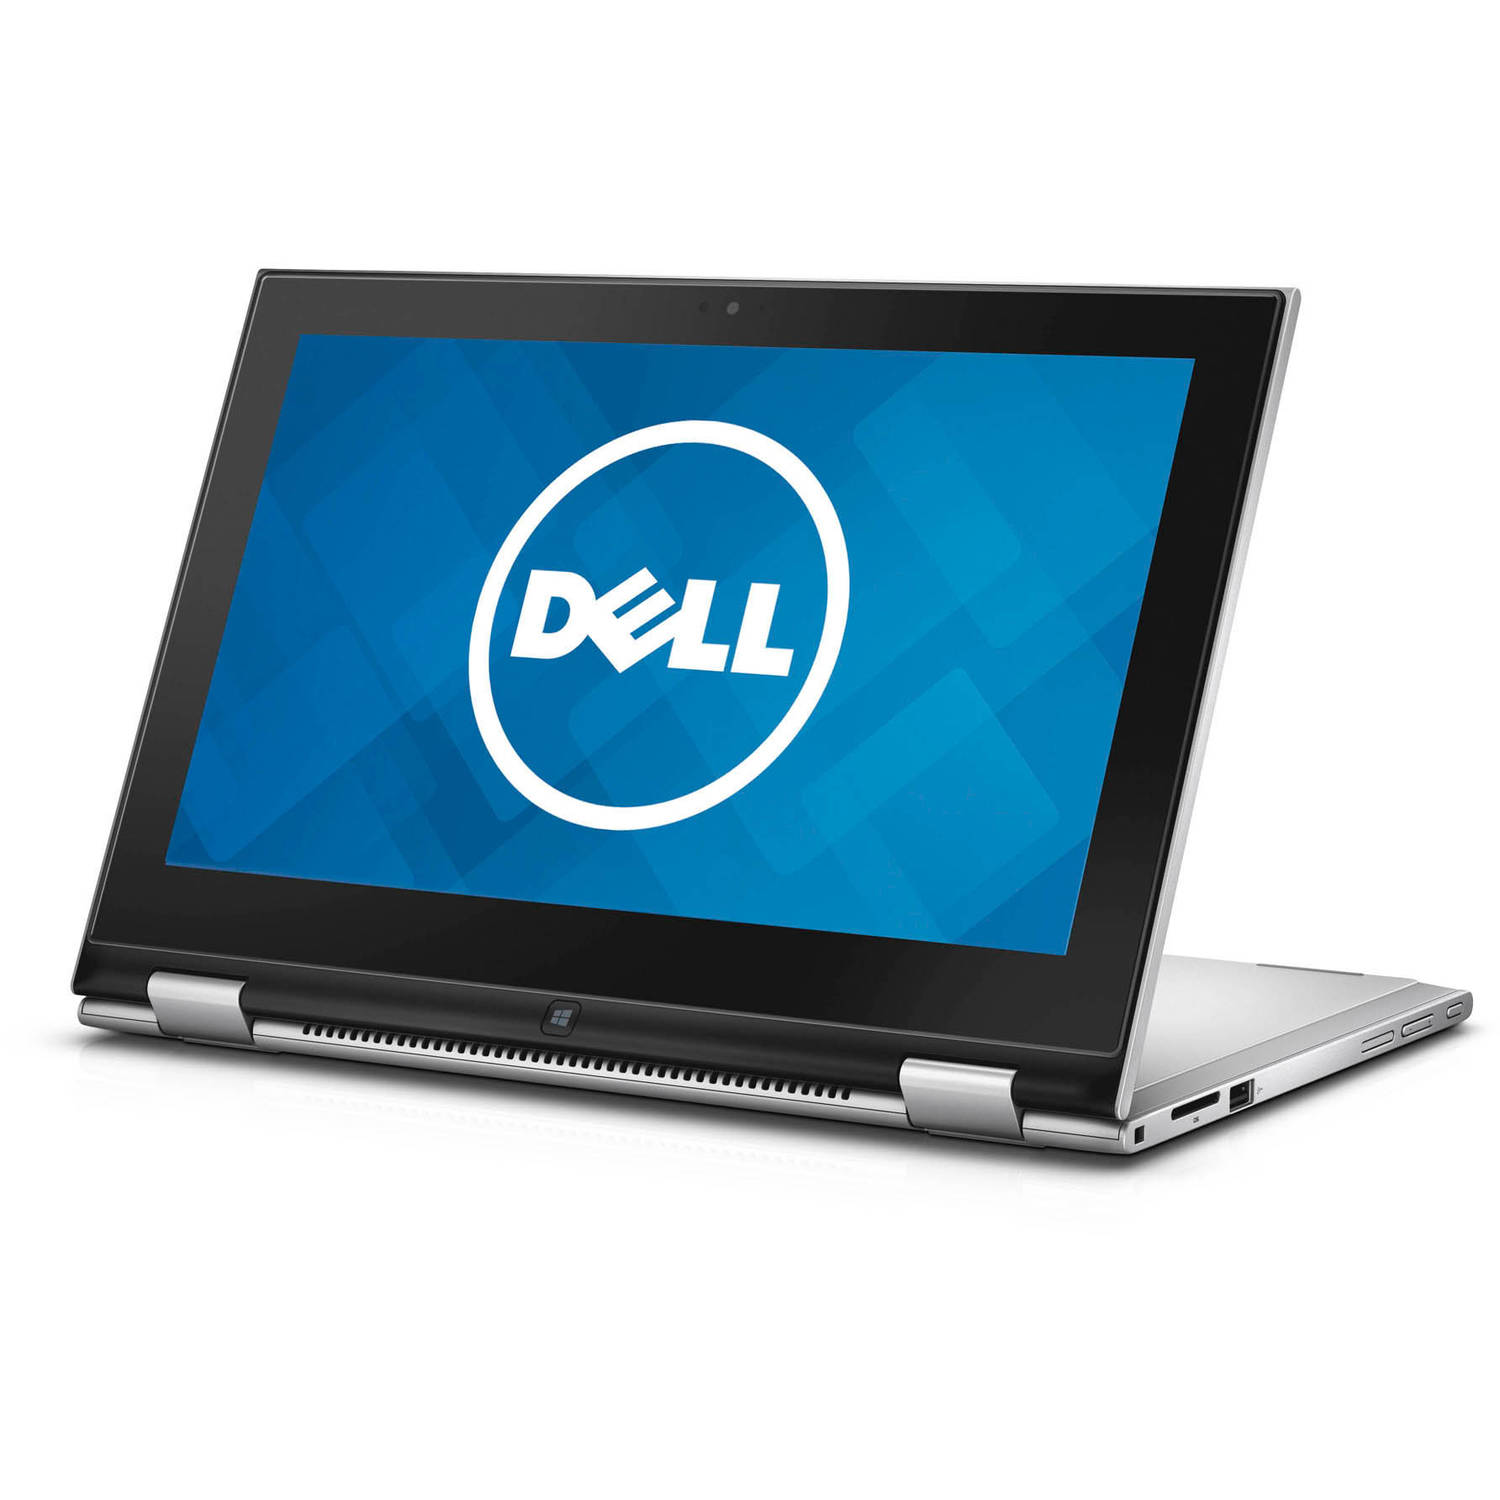 "Dell Silver 2-in-1 11.6"" Inspiron i3148-8840sLV Laptop PC with Intel Core i3-4030U Processor, 4GB Memory, Touchscreen, 500GB Hard Drive and Windows 8.1   (Eligible for Windows 10 upgrade)"